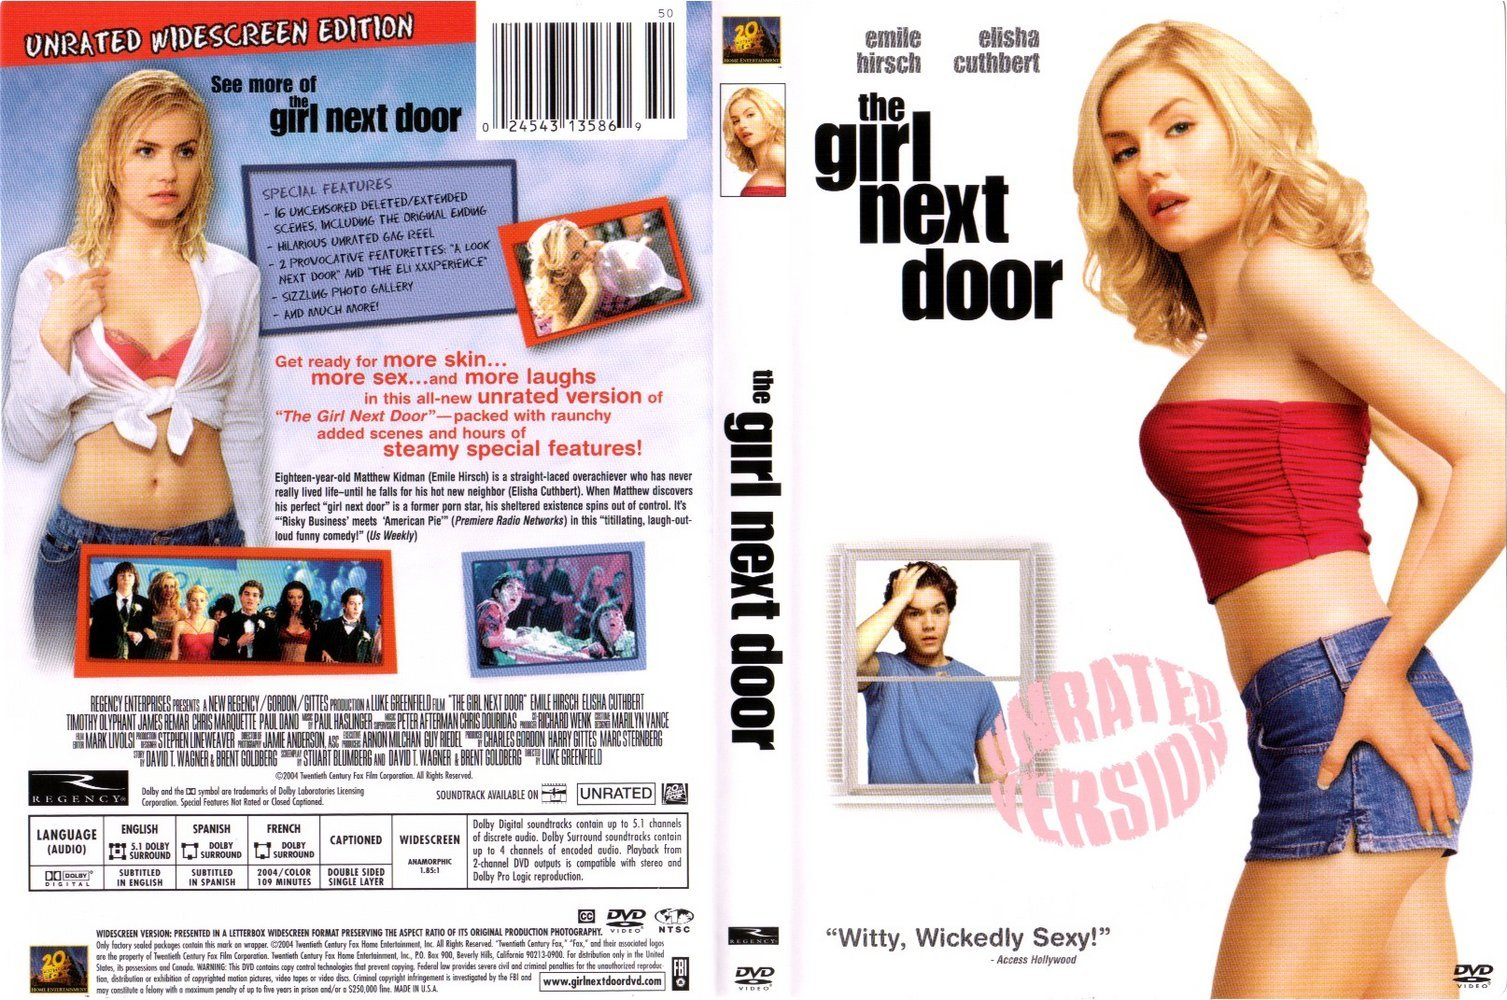 http://4.bp.blogspot.com/_Z5rfXtLmy4w/TGRnEoITKAI/AAAAAAAAAc4/-_at9kCT4sI/s1600/The_Girl_Next_Door_Unrated-front.jpg